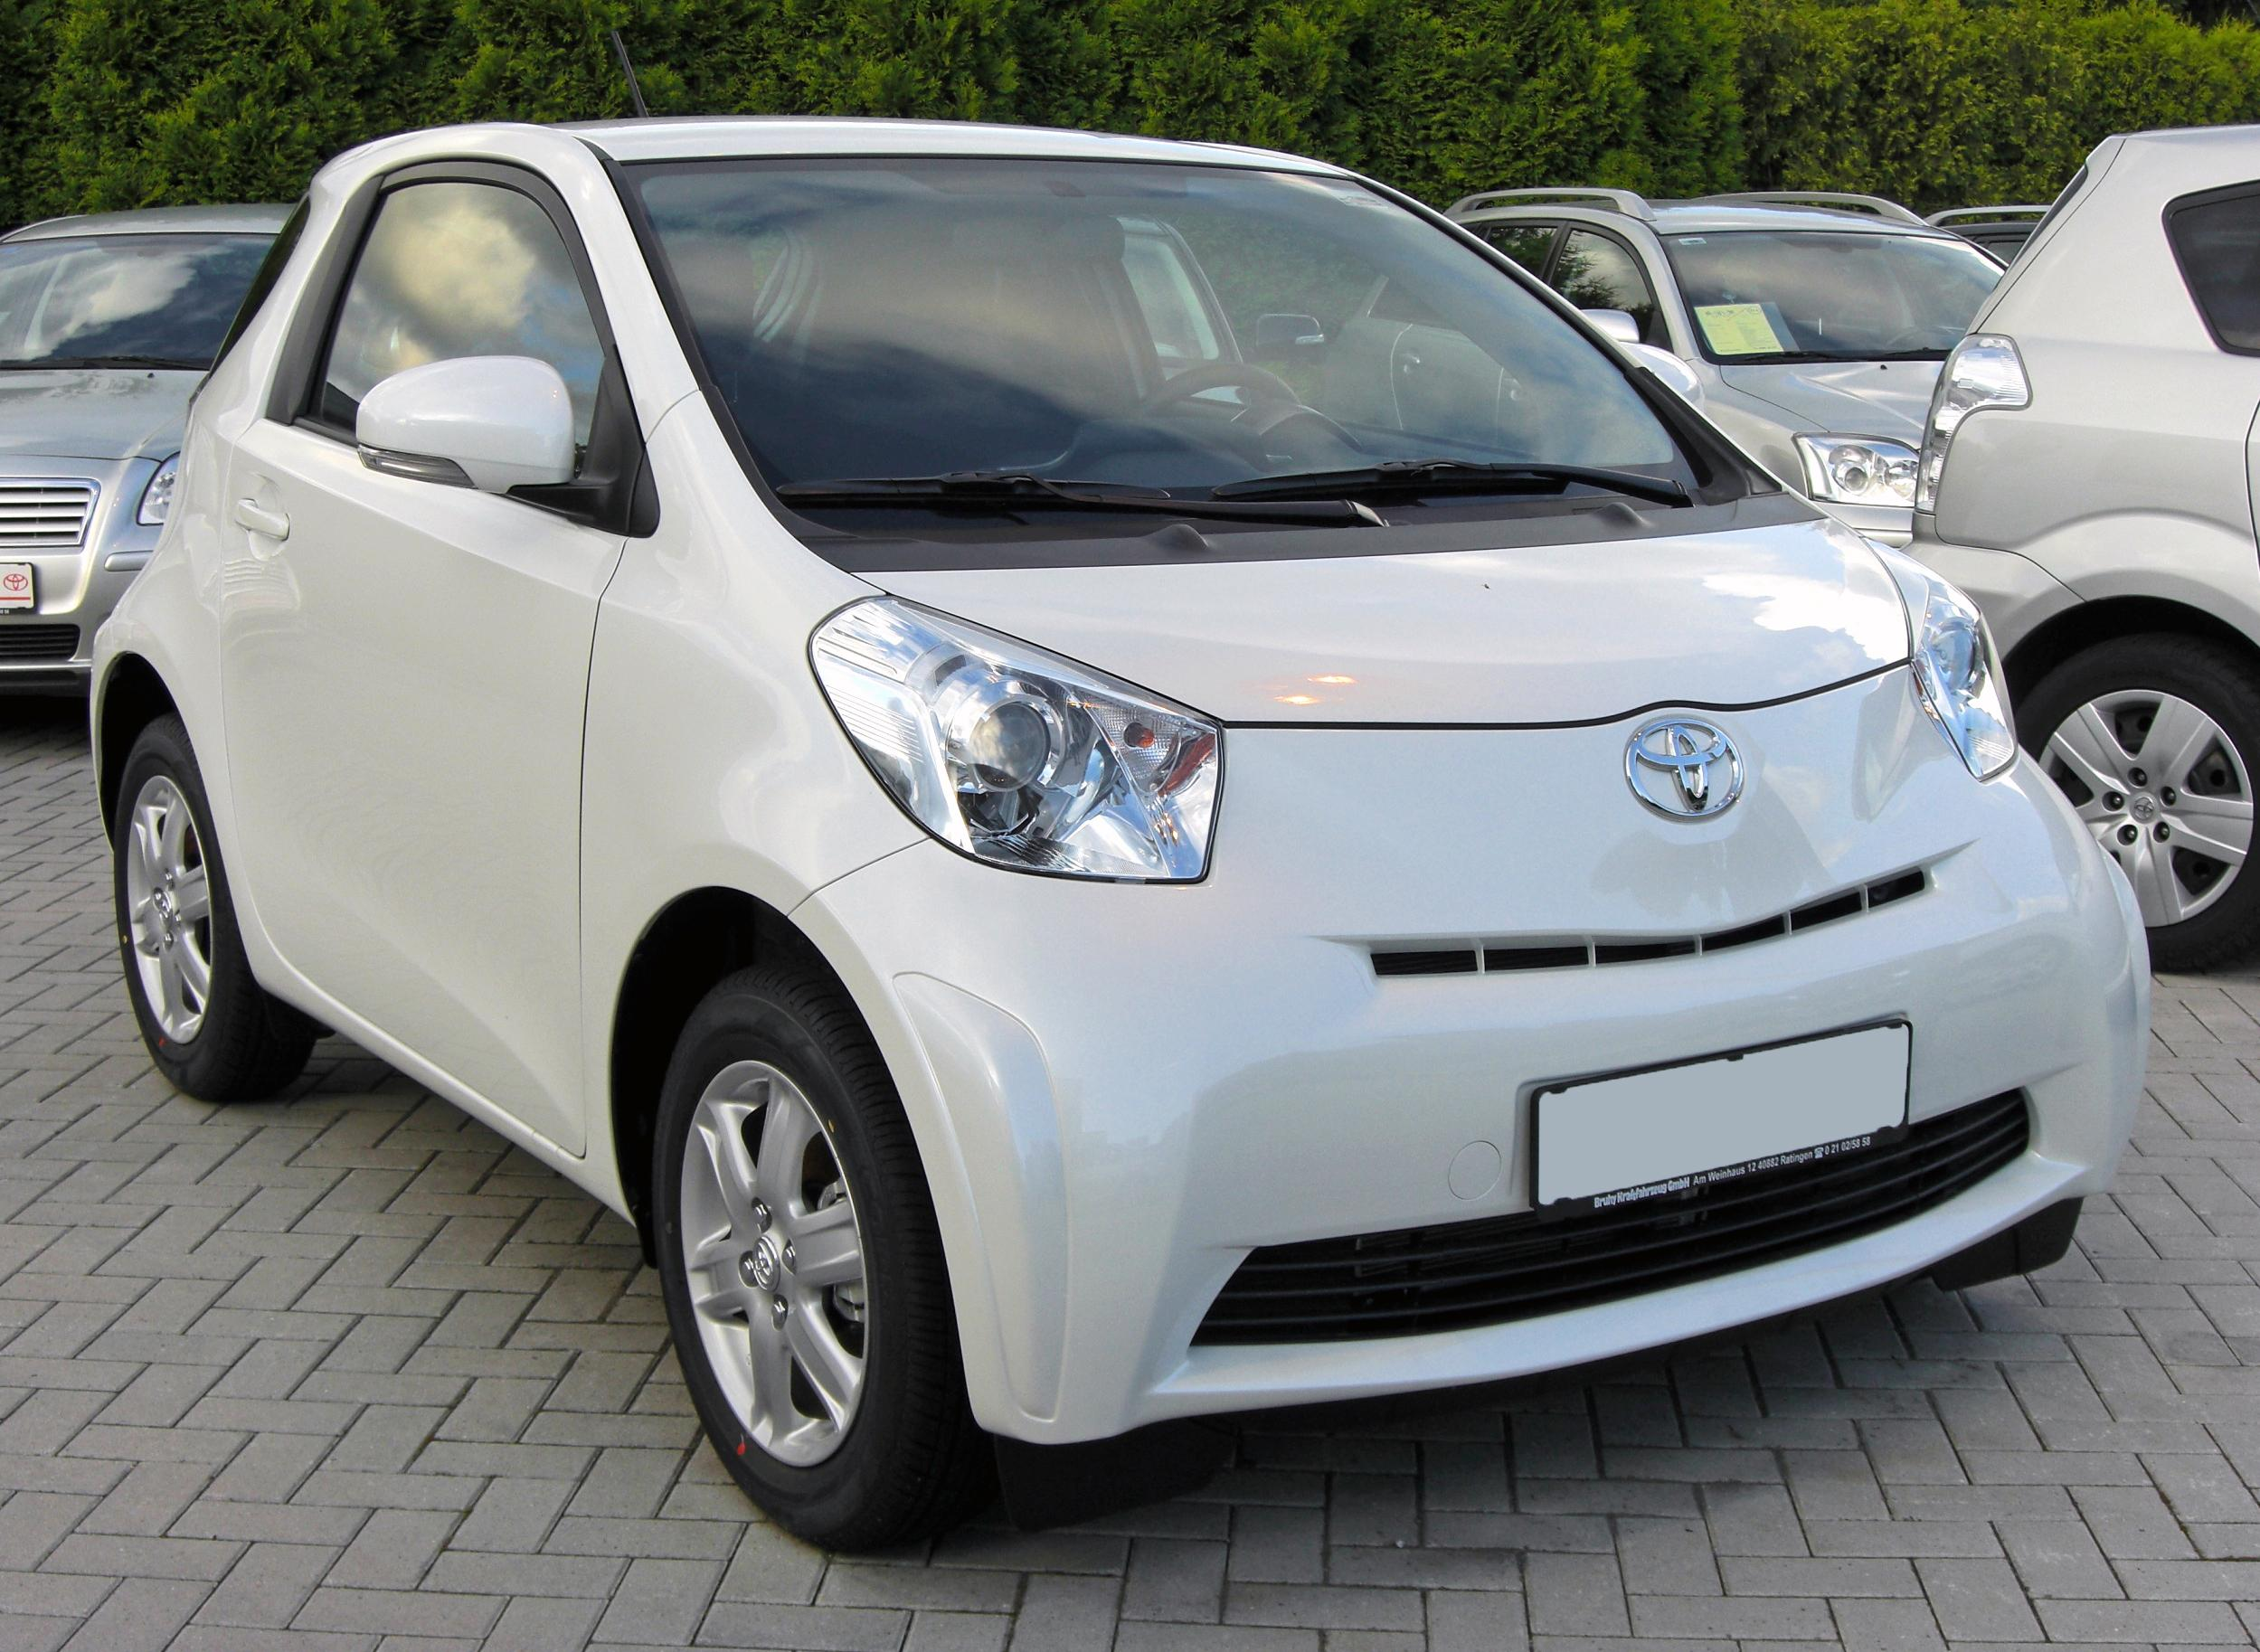 Toyota iQ #1  high quality Toyota iQ pictures on